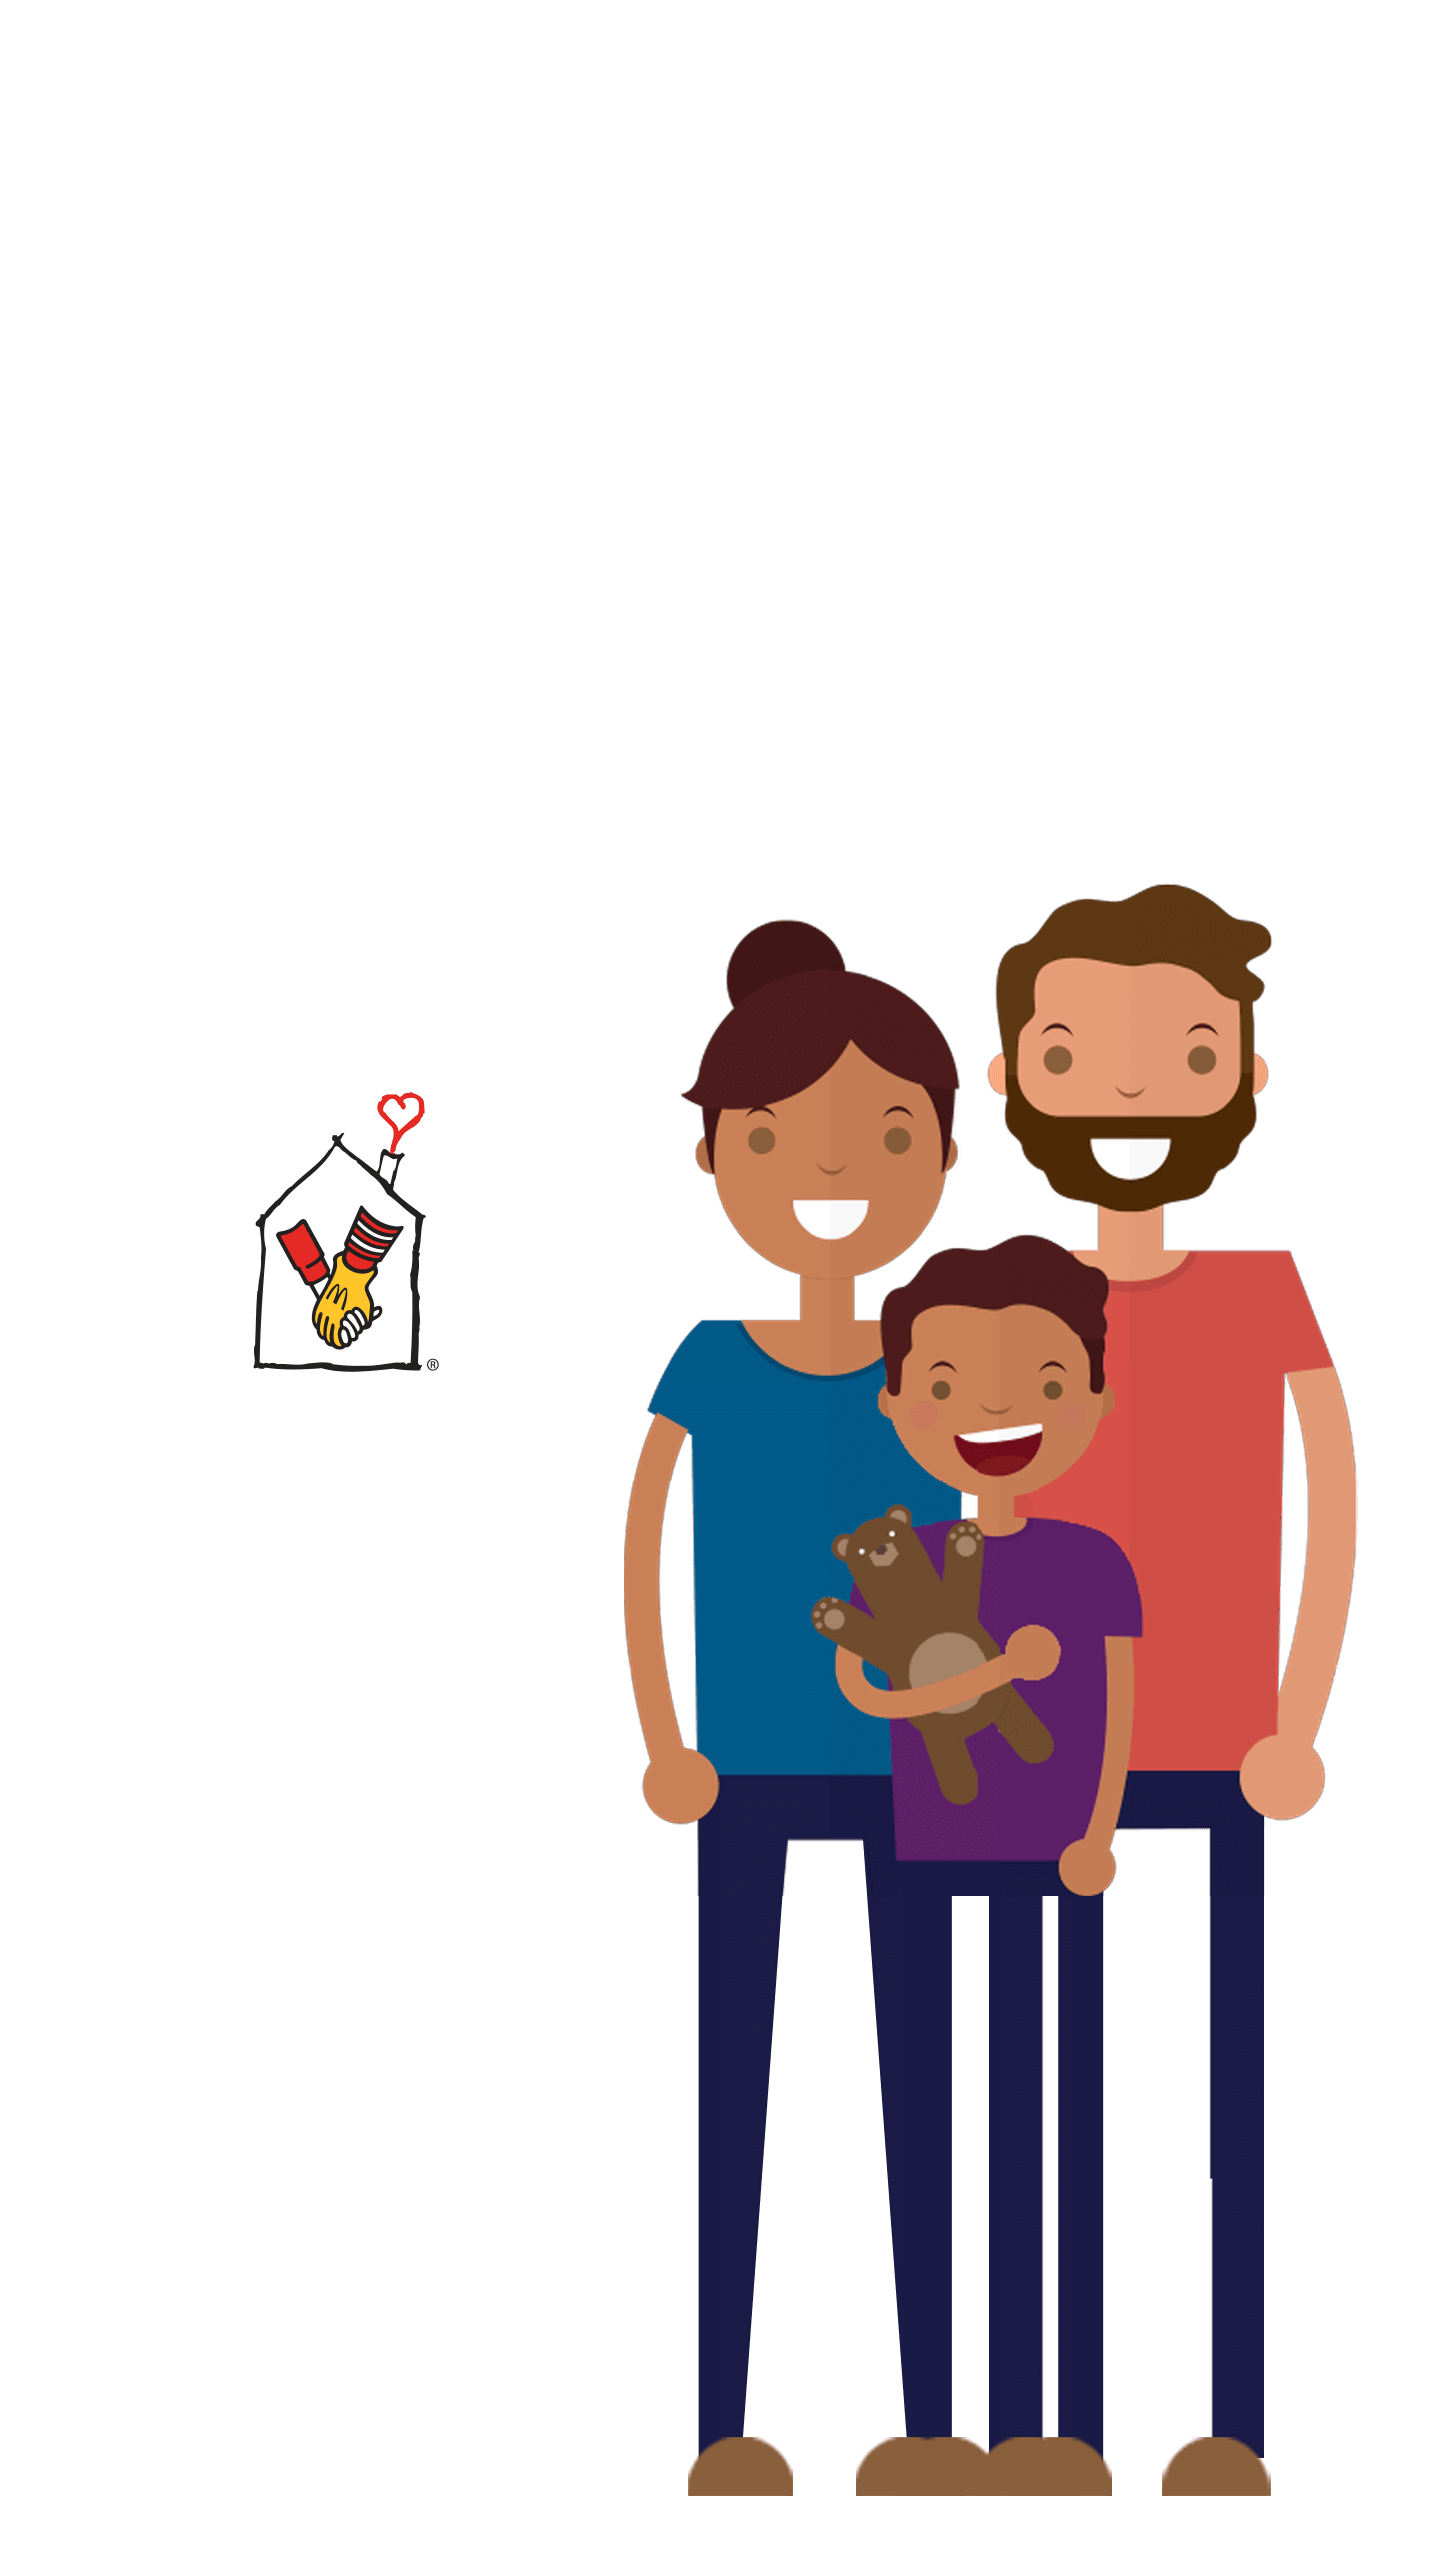 A donation is made to RMHC every time you buy a Happy Meal. Learn More about Ronald McDonald House Charities!